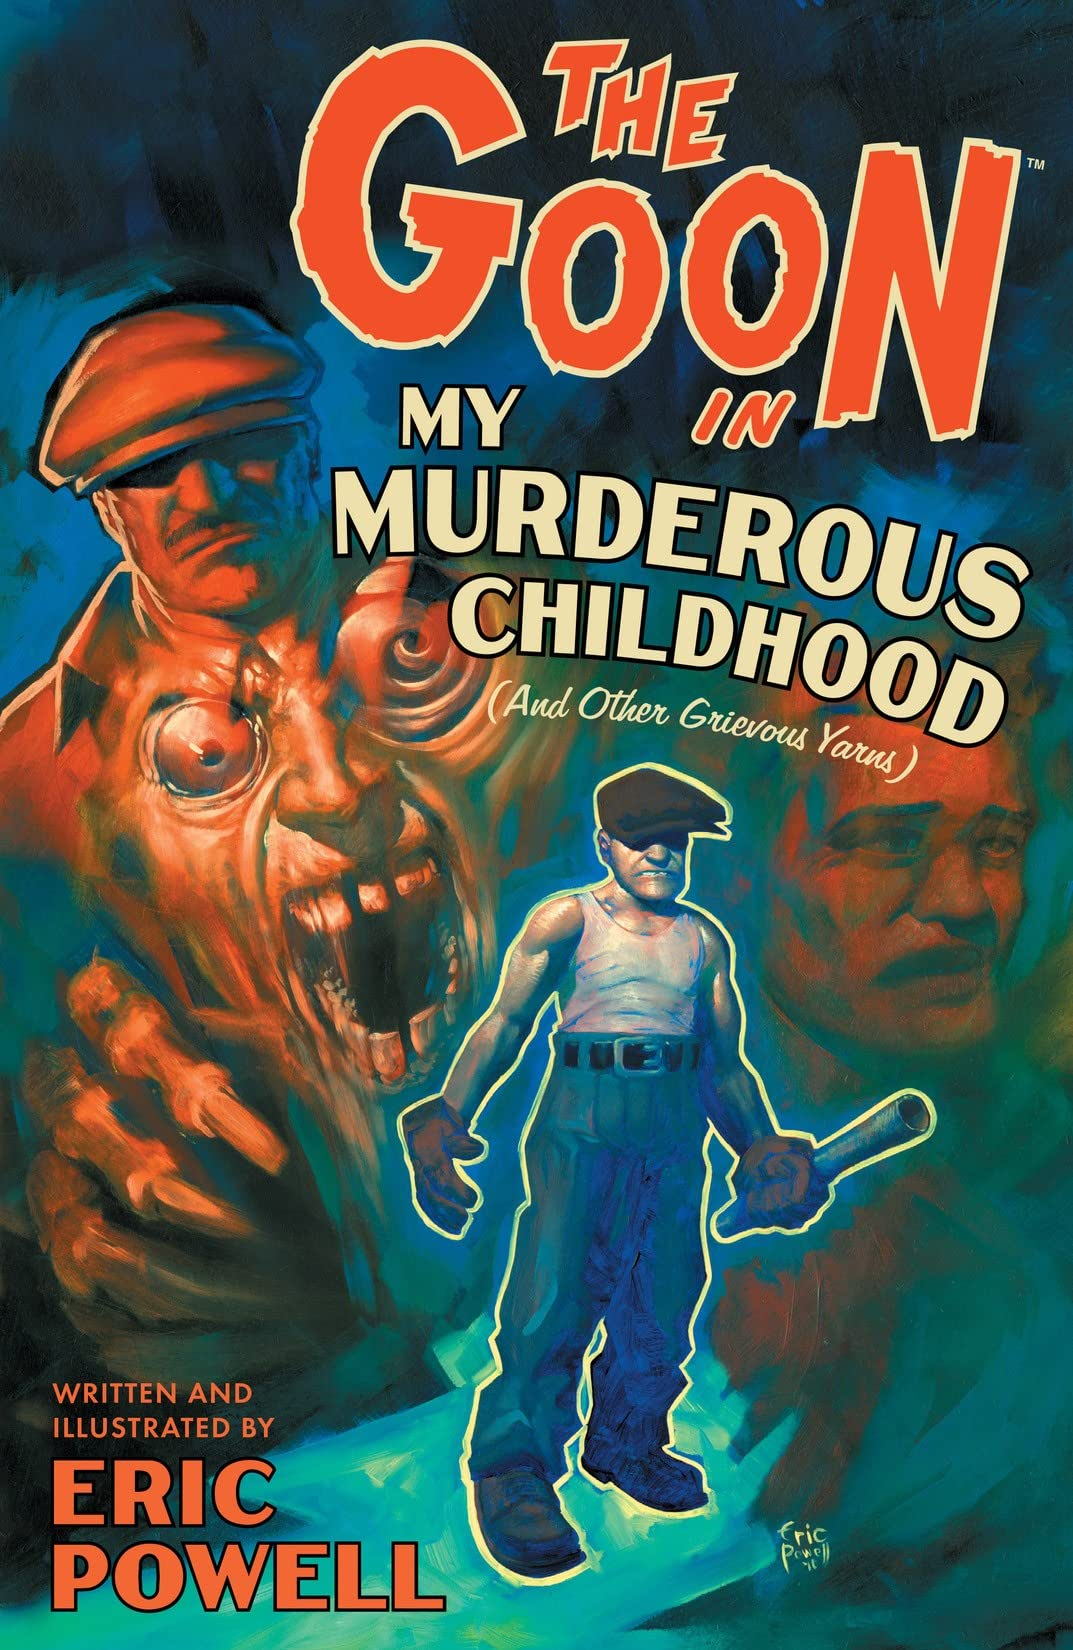 The Goon Vol. 2: My Murderous Childhood